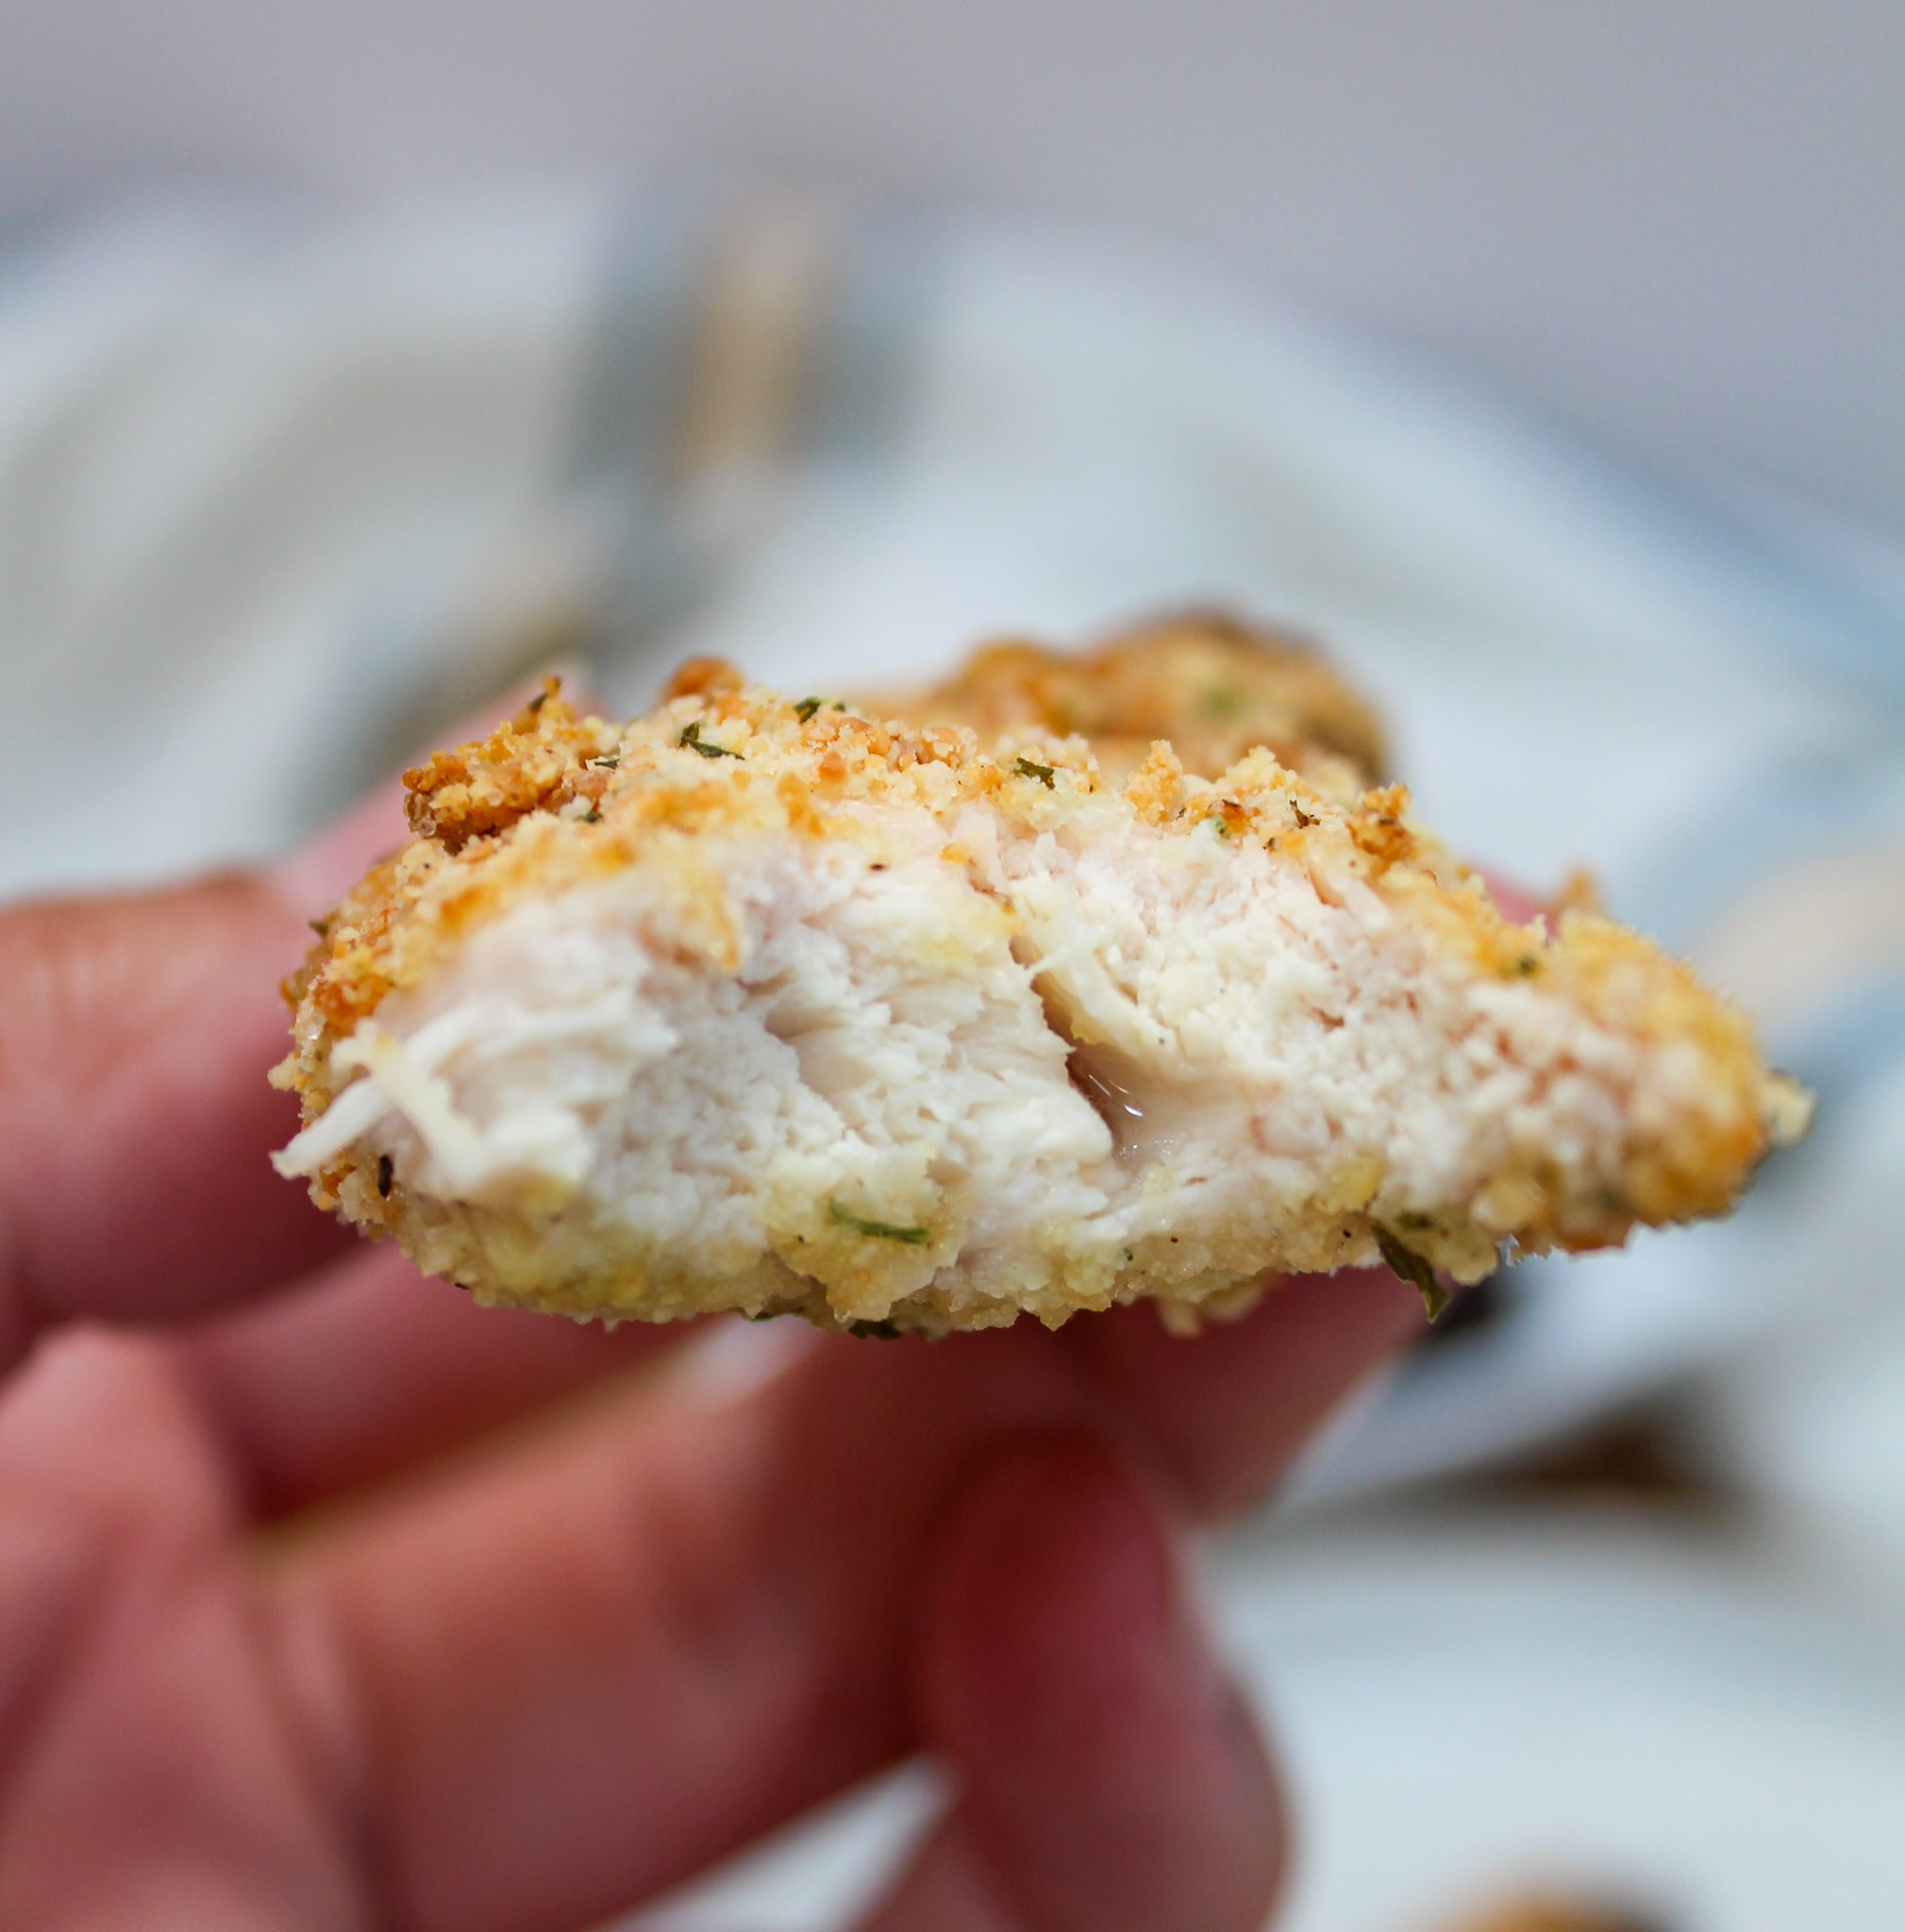 front shot of chicken tender with a bite